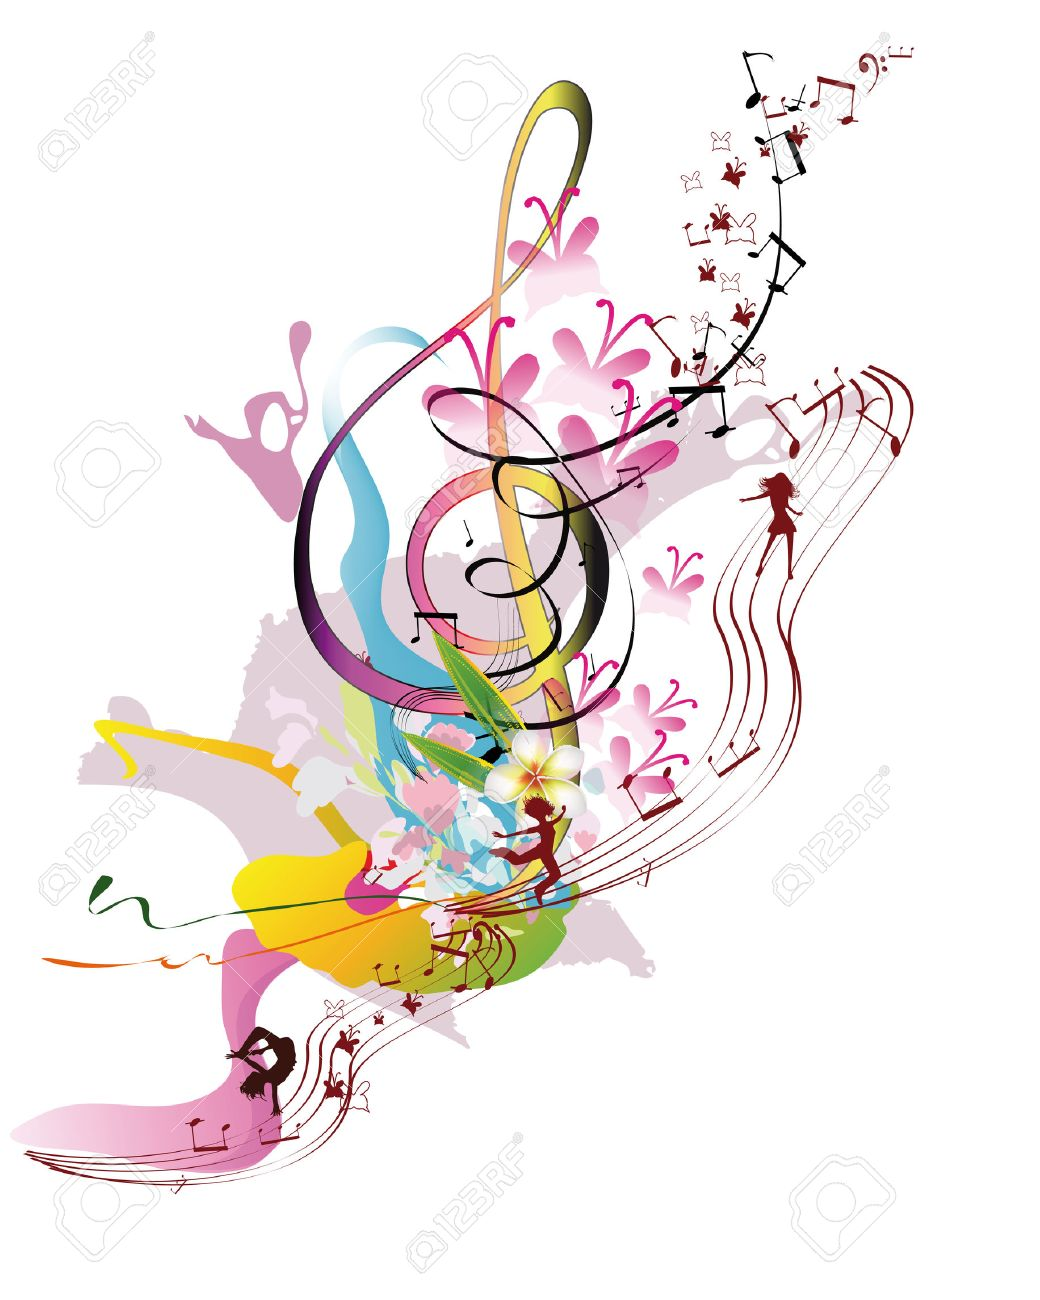 Abstract watercolor treble clef with splashes, flowers and dancing people. Vector illustration. - 65655153